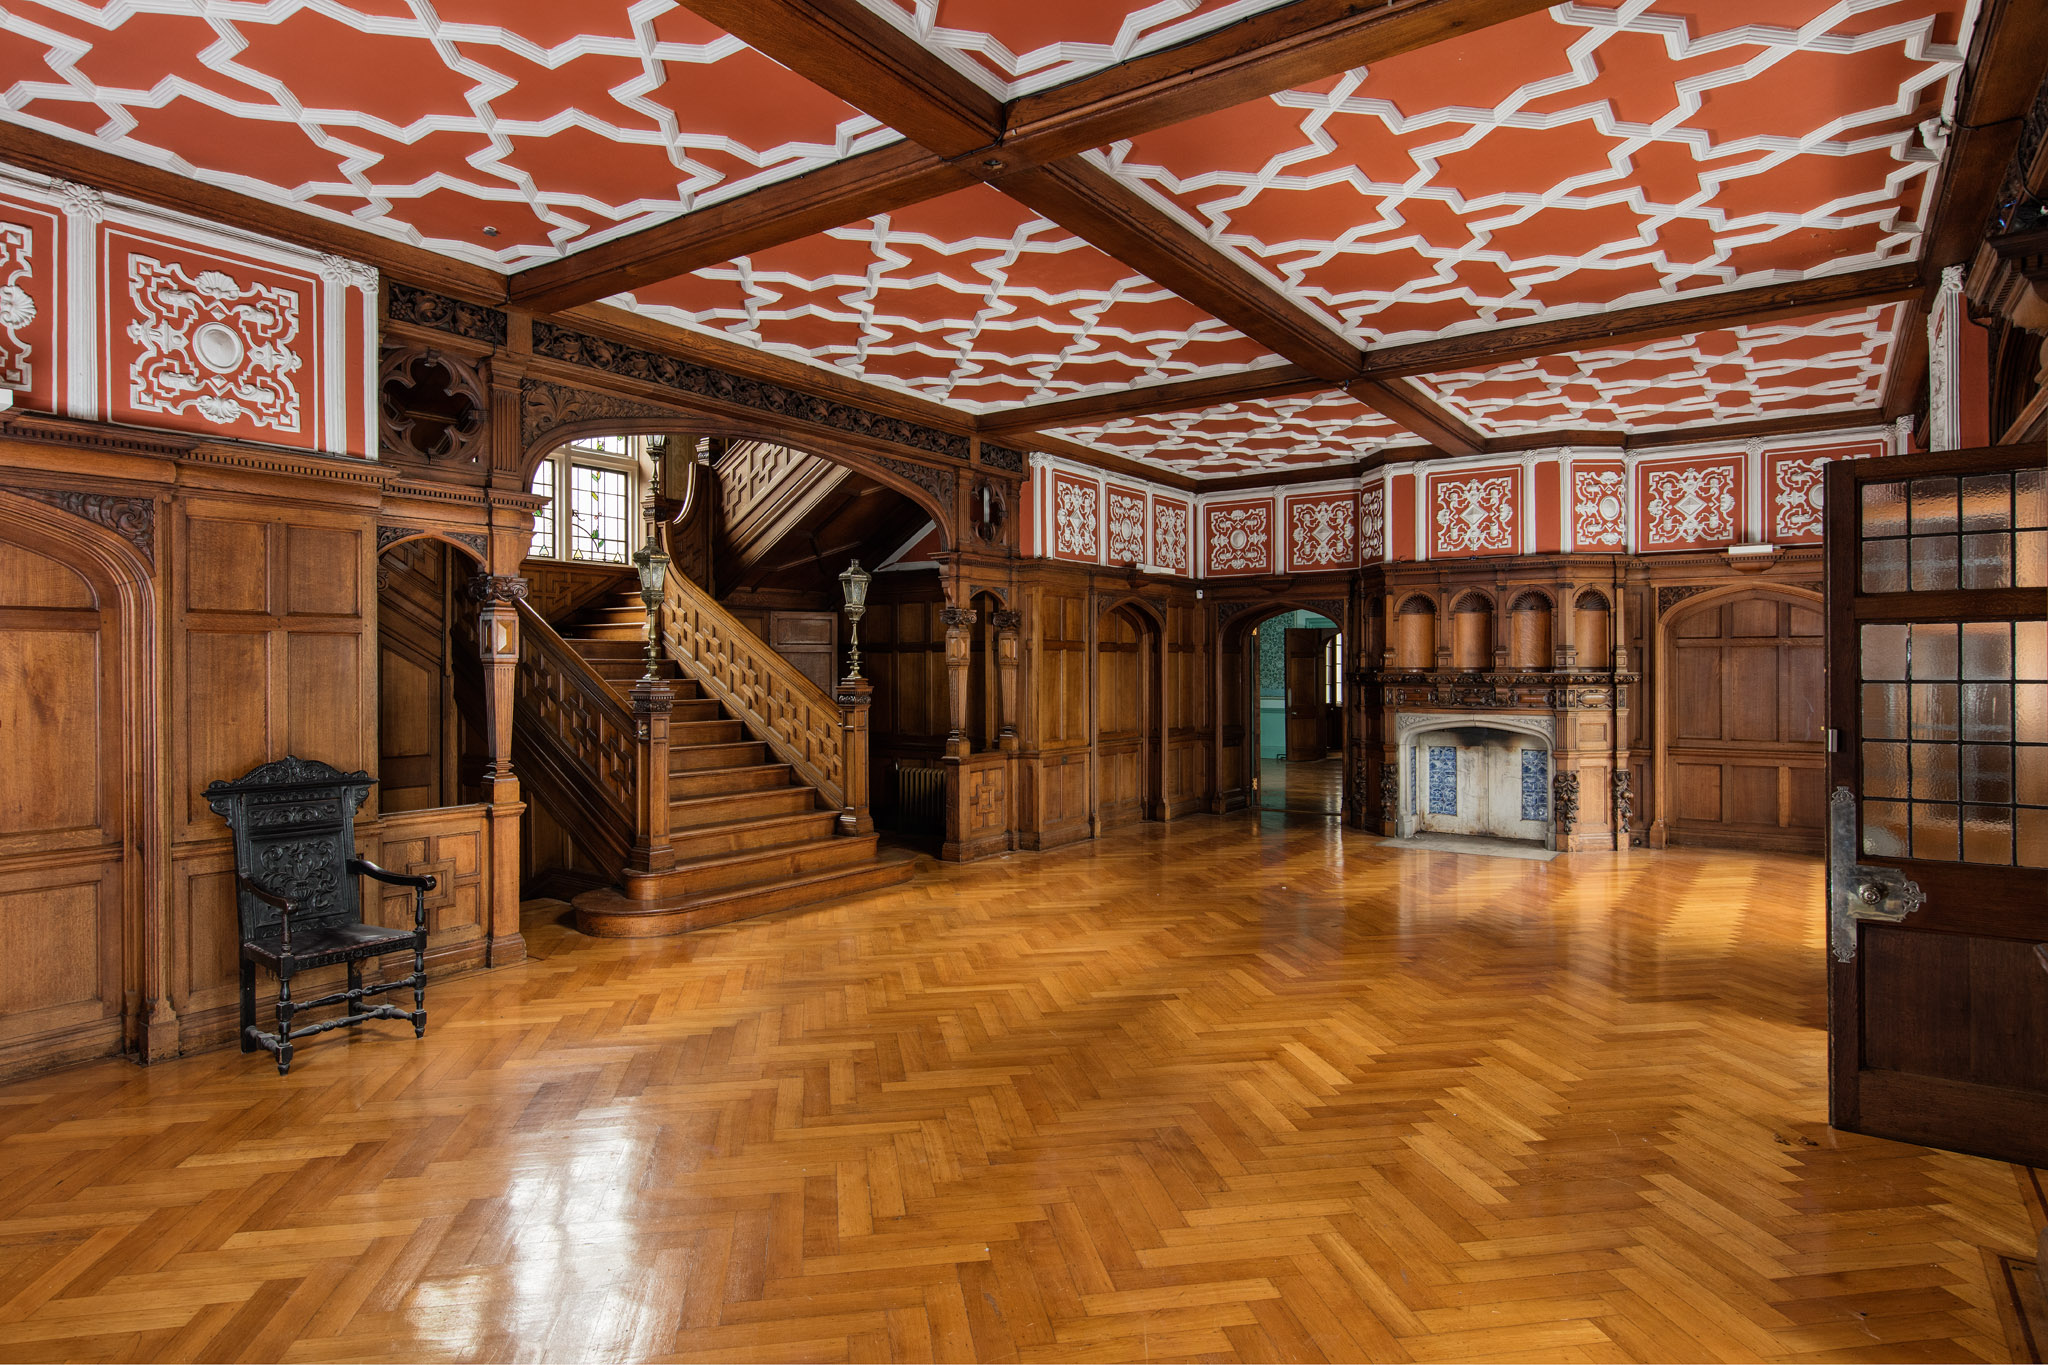 Architectural And Interiors Photography And Video Architectural - Edwardian house interiors